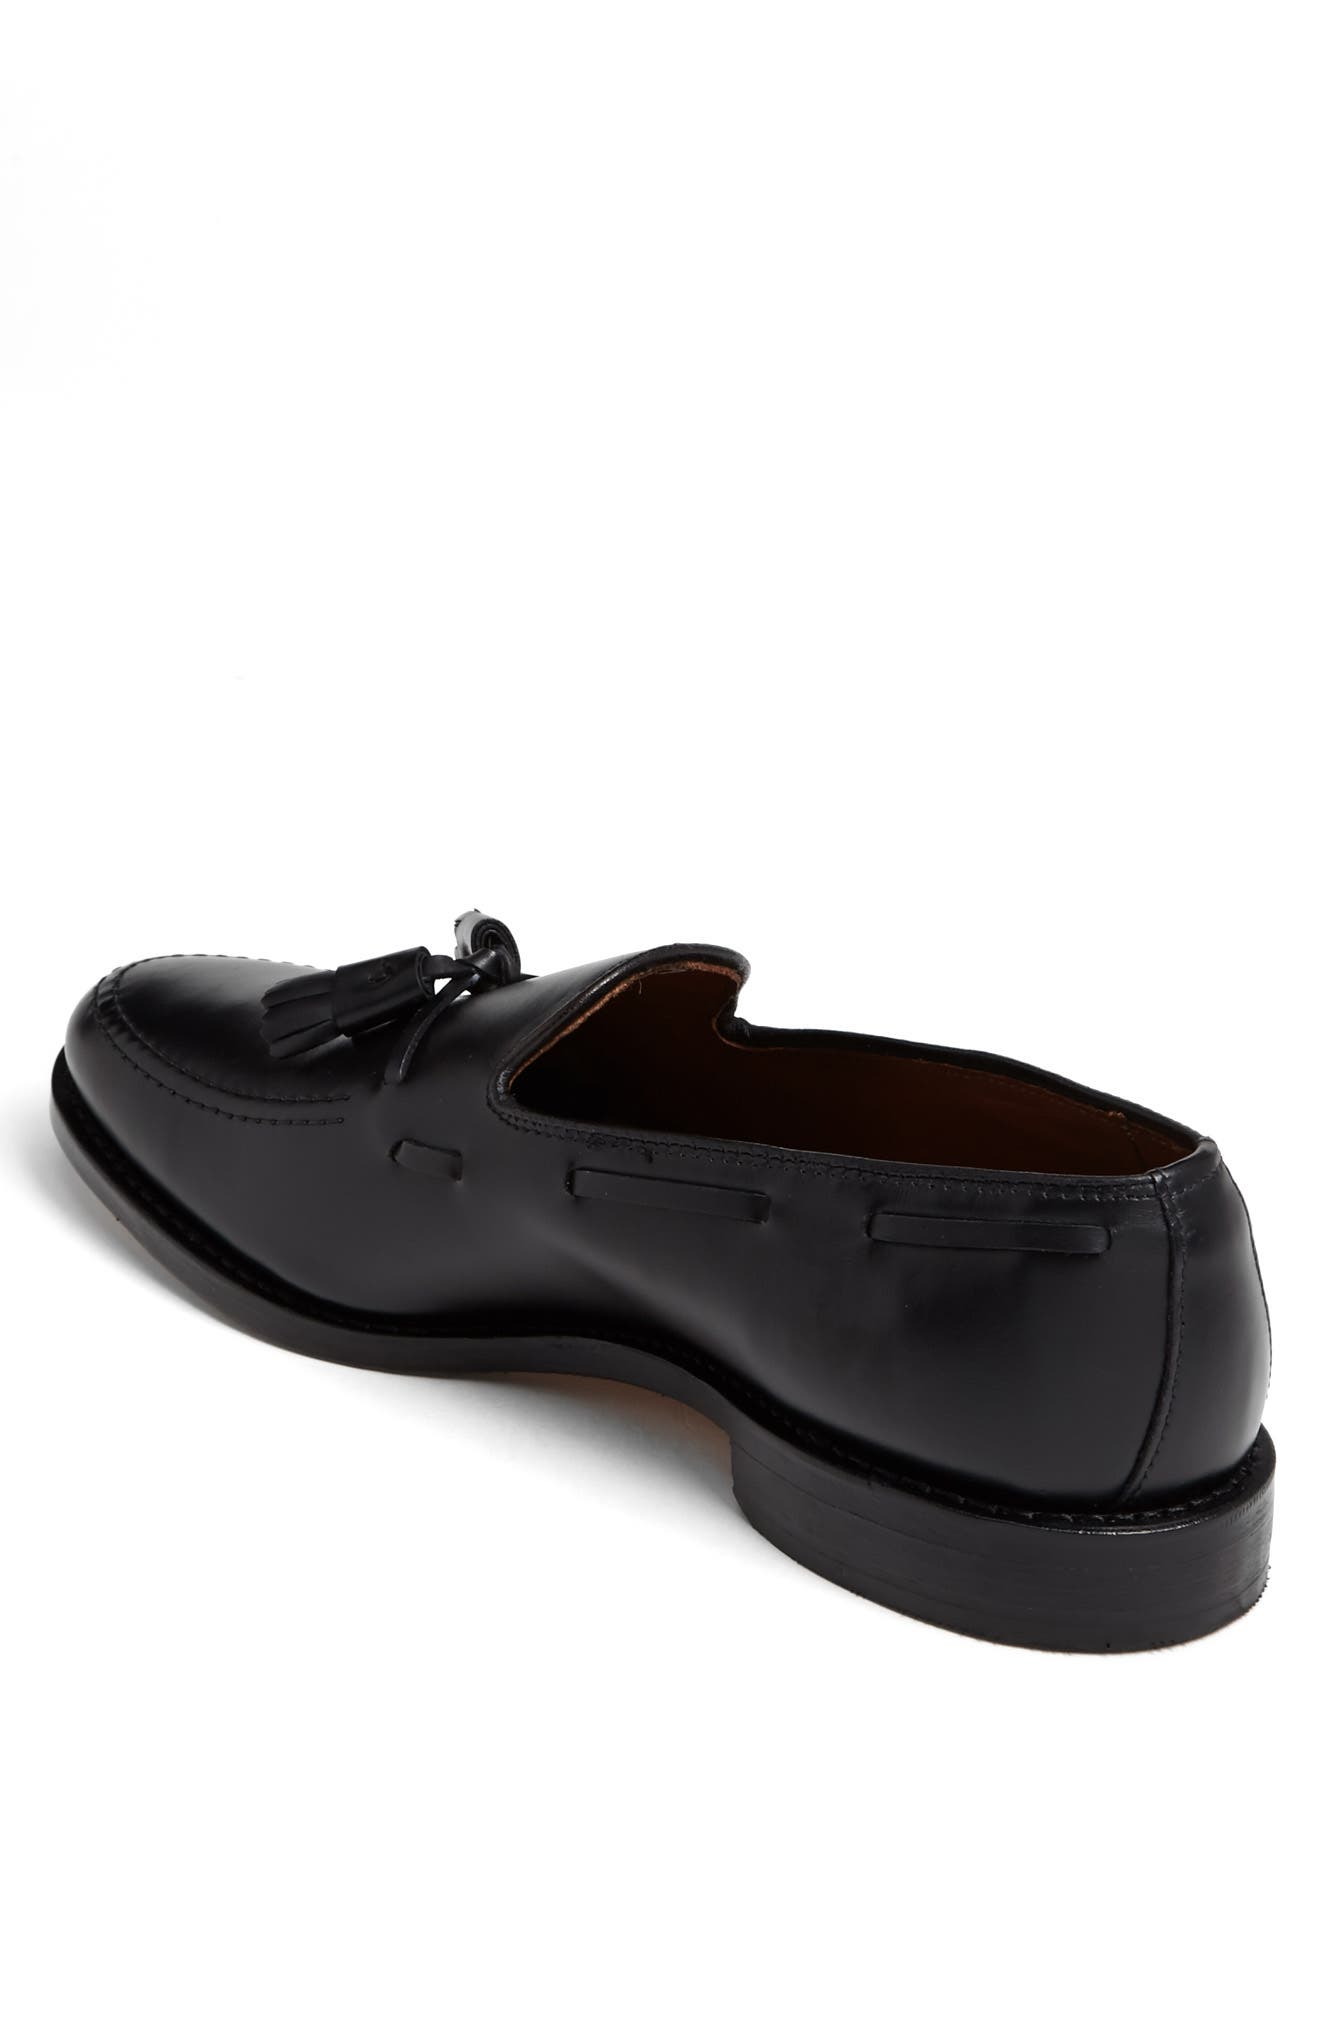 'Grayson' Tassel Loafer,                             Alternate thumbnail 5, color,                             Black Leather